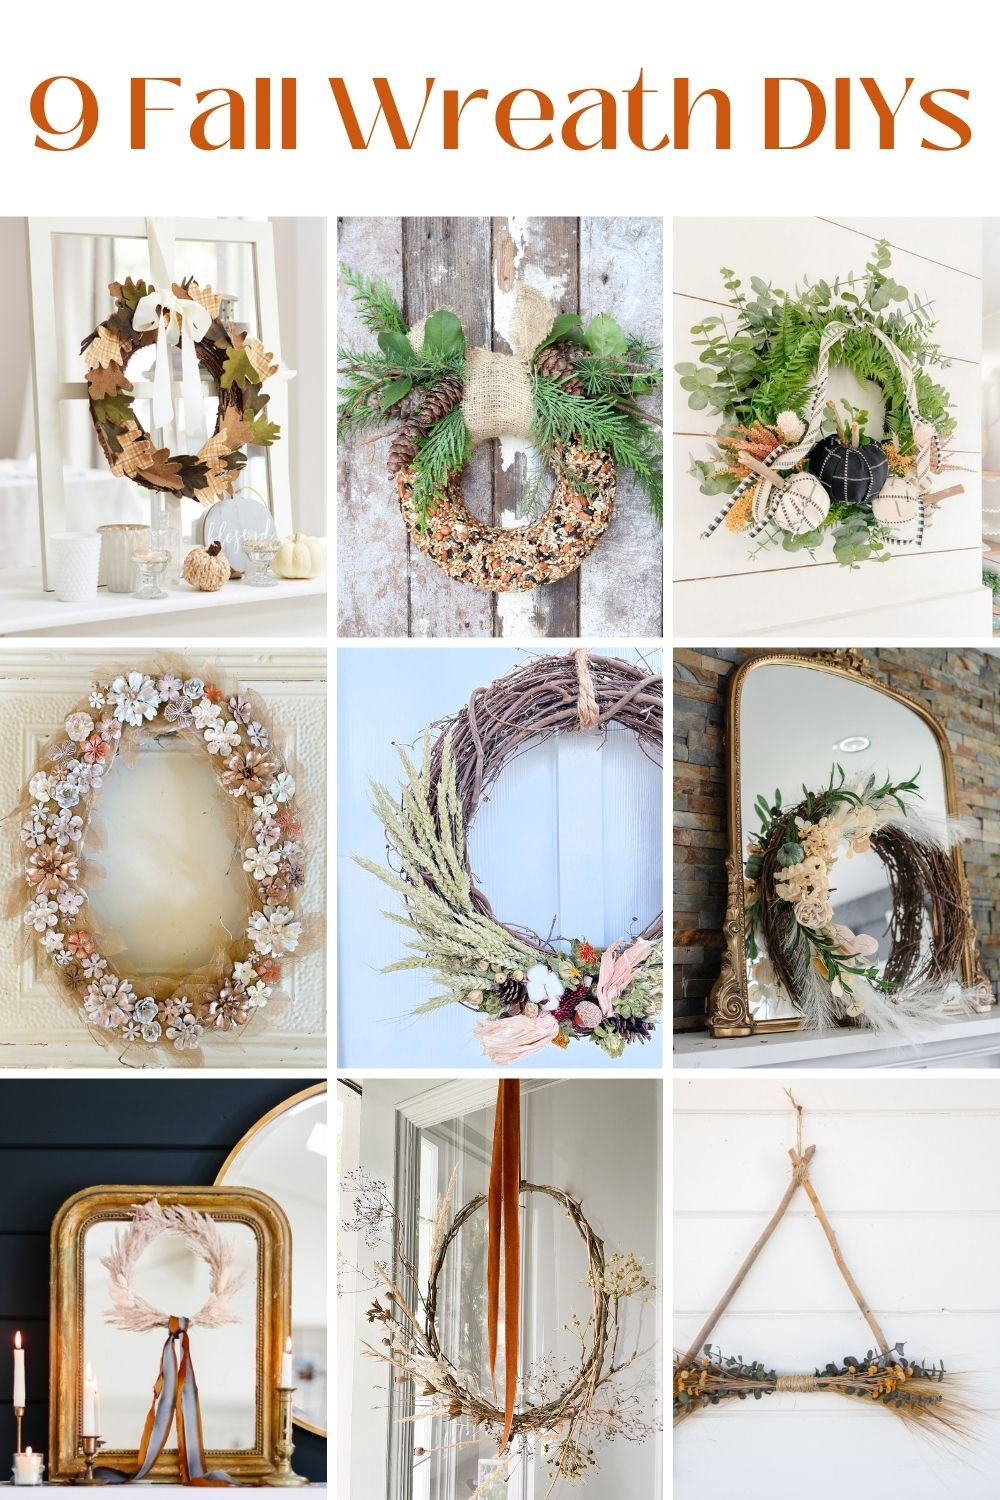 Dollar Store Pumpkin Fall Wreath. Turn $1 pumpkins into beautiful decor by covering them in fabric and adding them to a simple wreath!